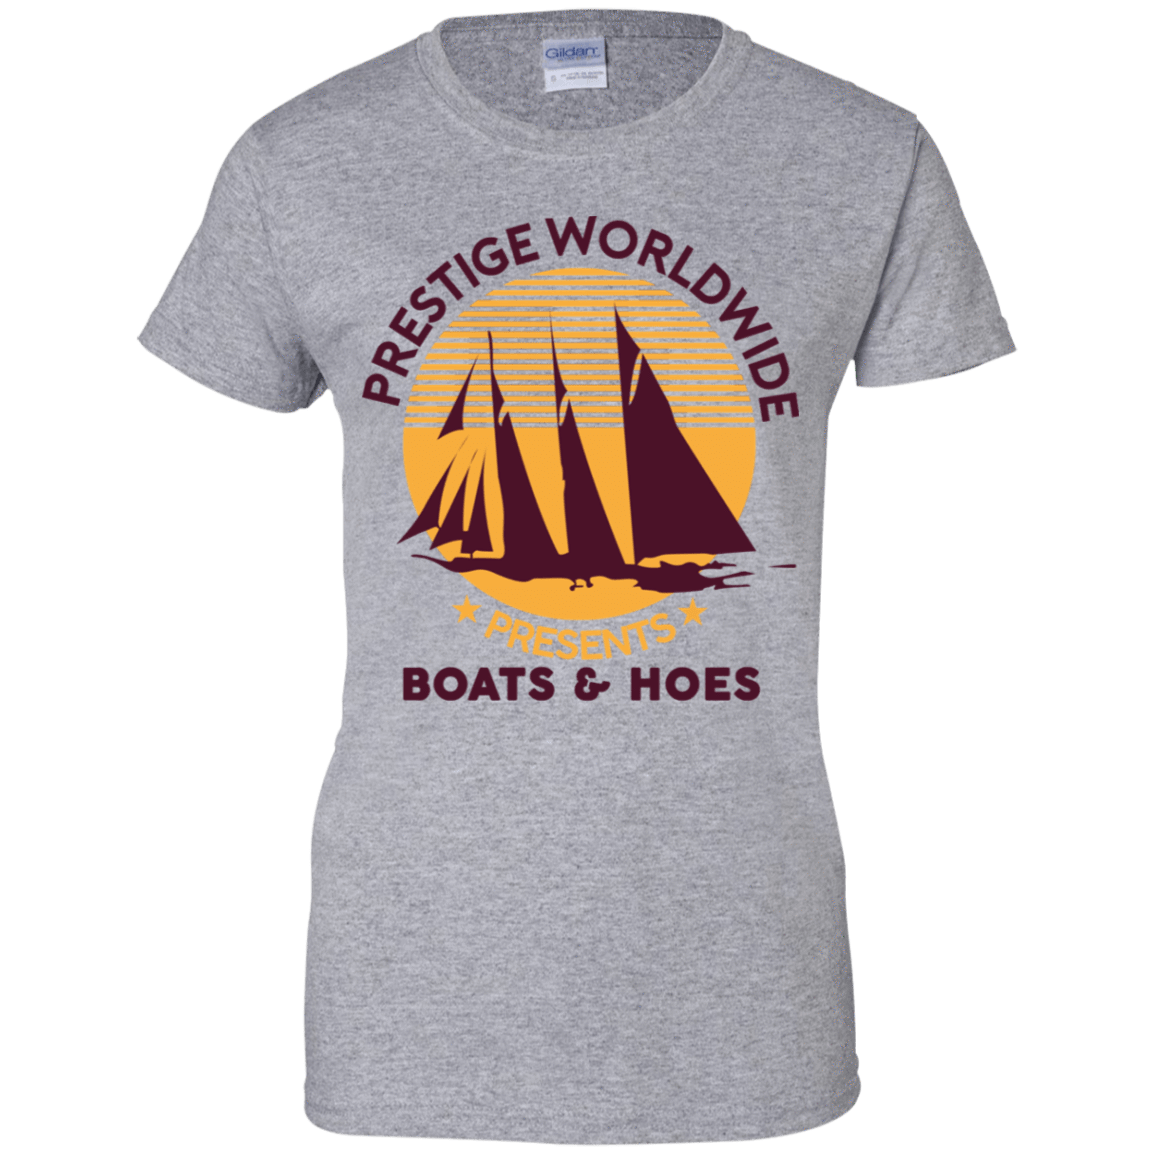 Prestige Worldwide Presents Boats & Hoes 939-9265-72790291-44821 - Tee Ript